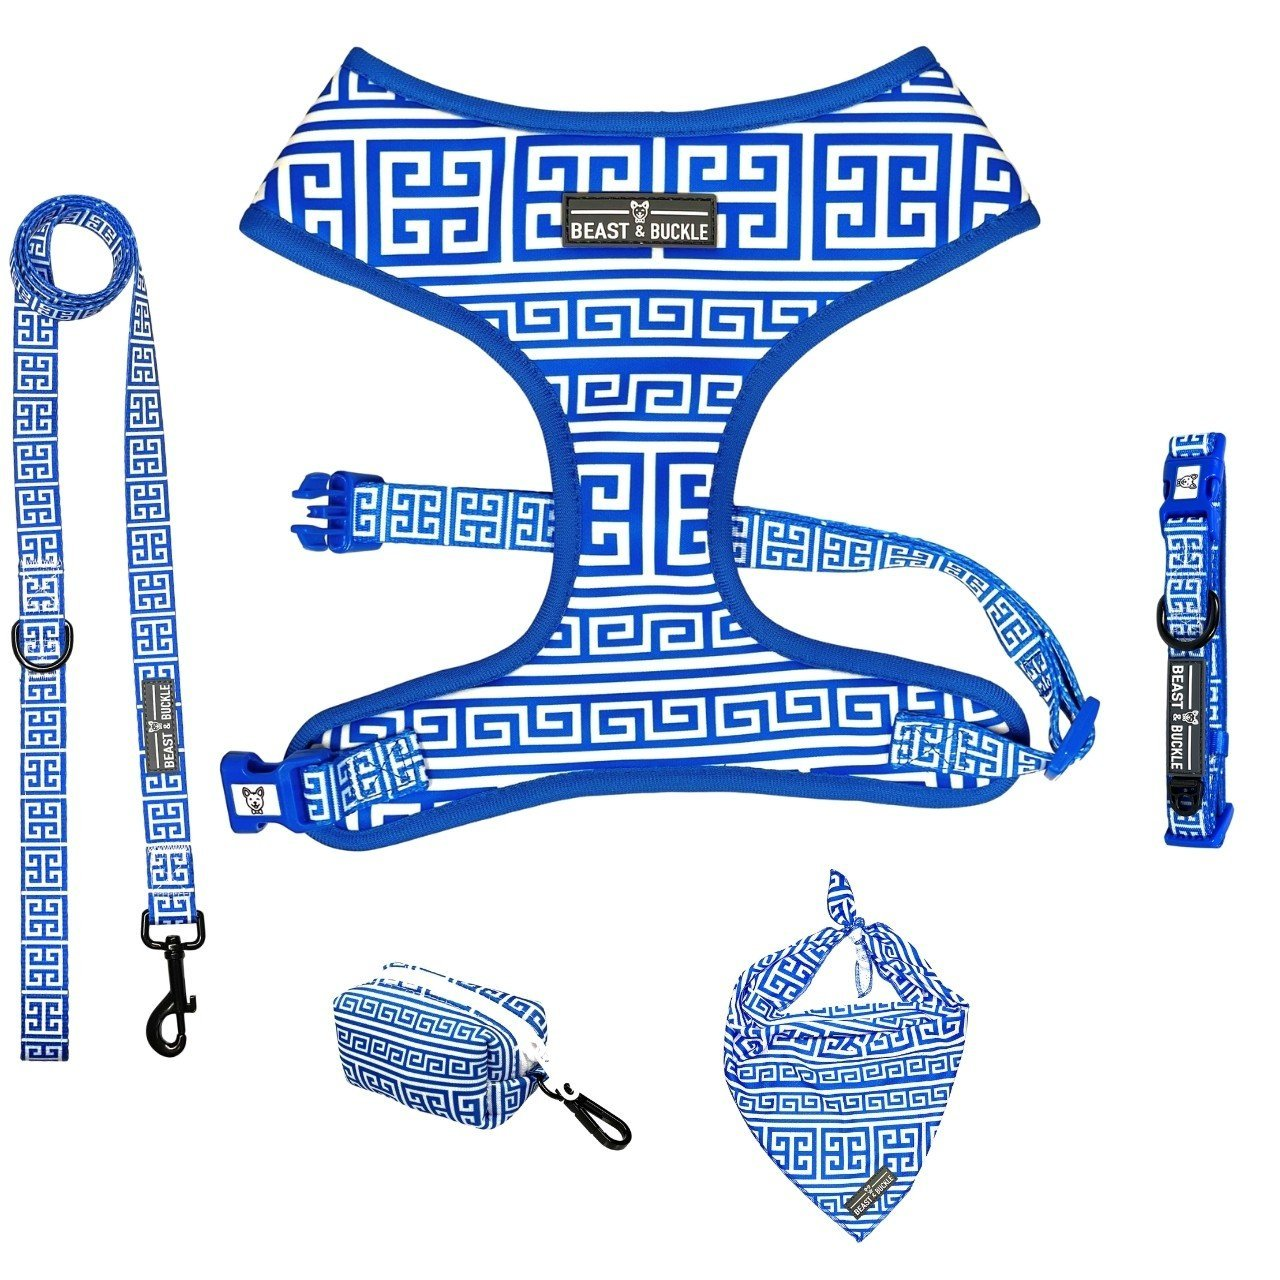 Greek Key Classic Harness Collection Bundle - Beast & Buckle